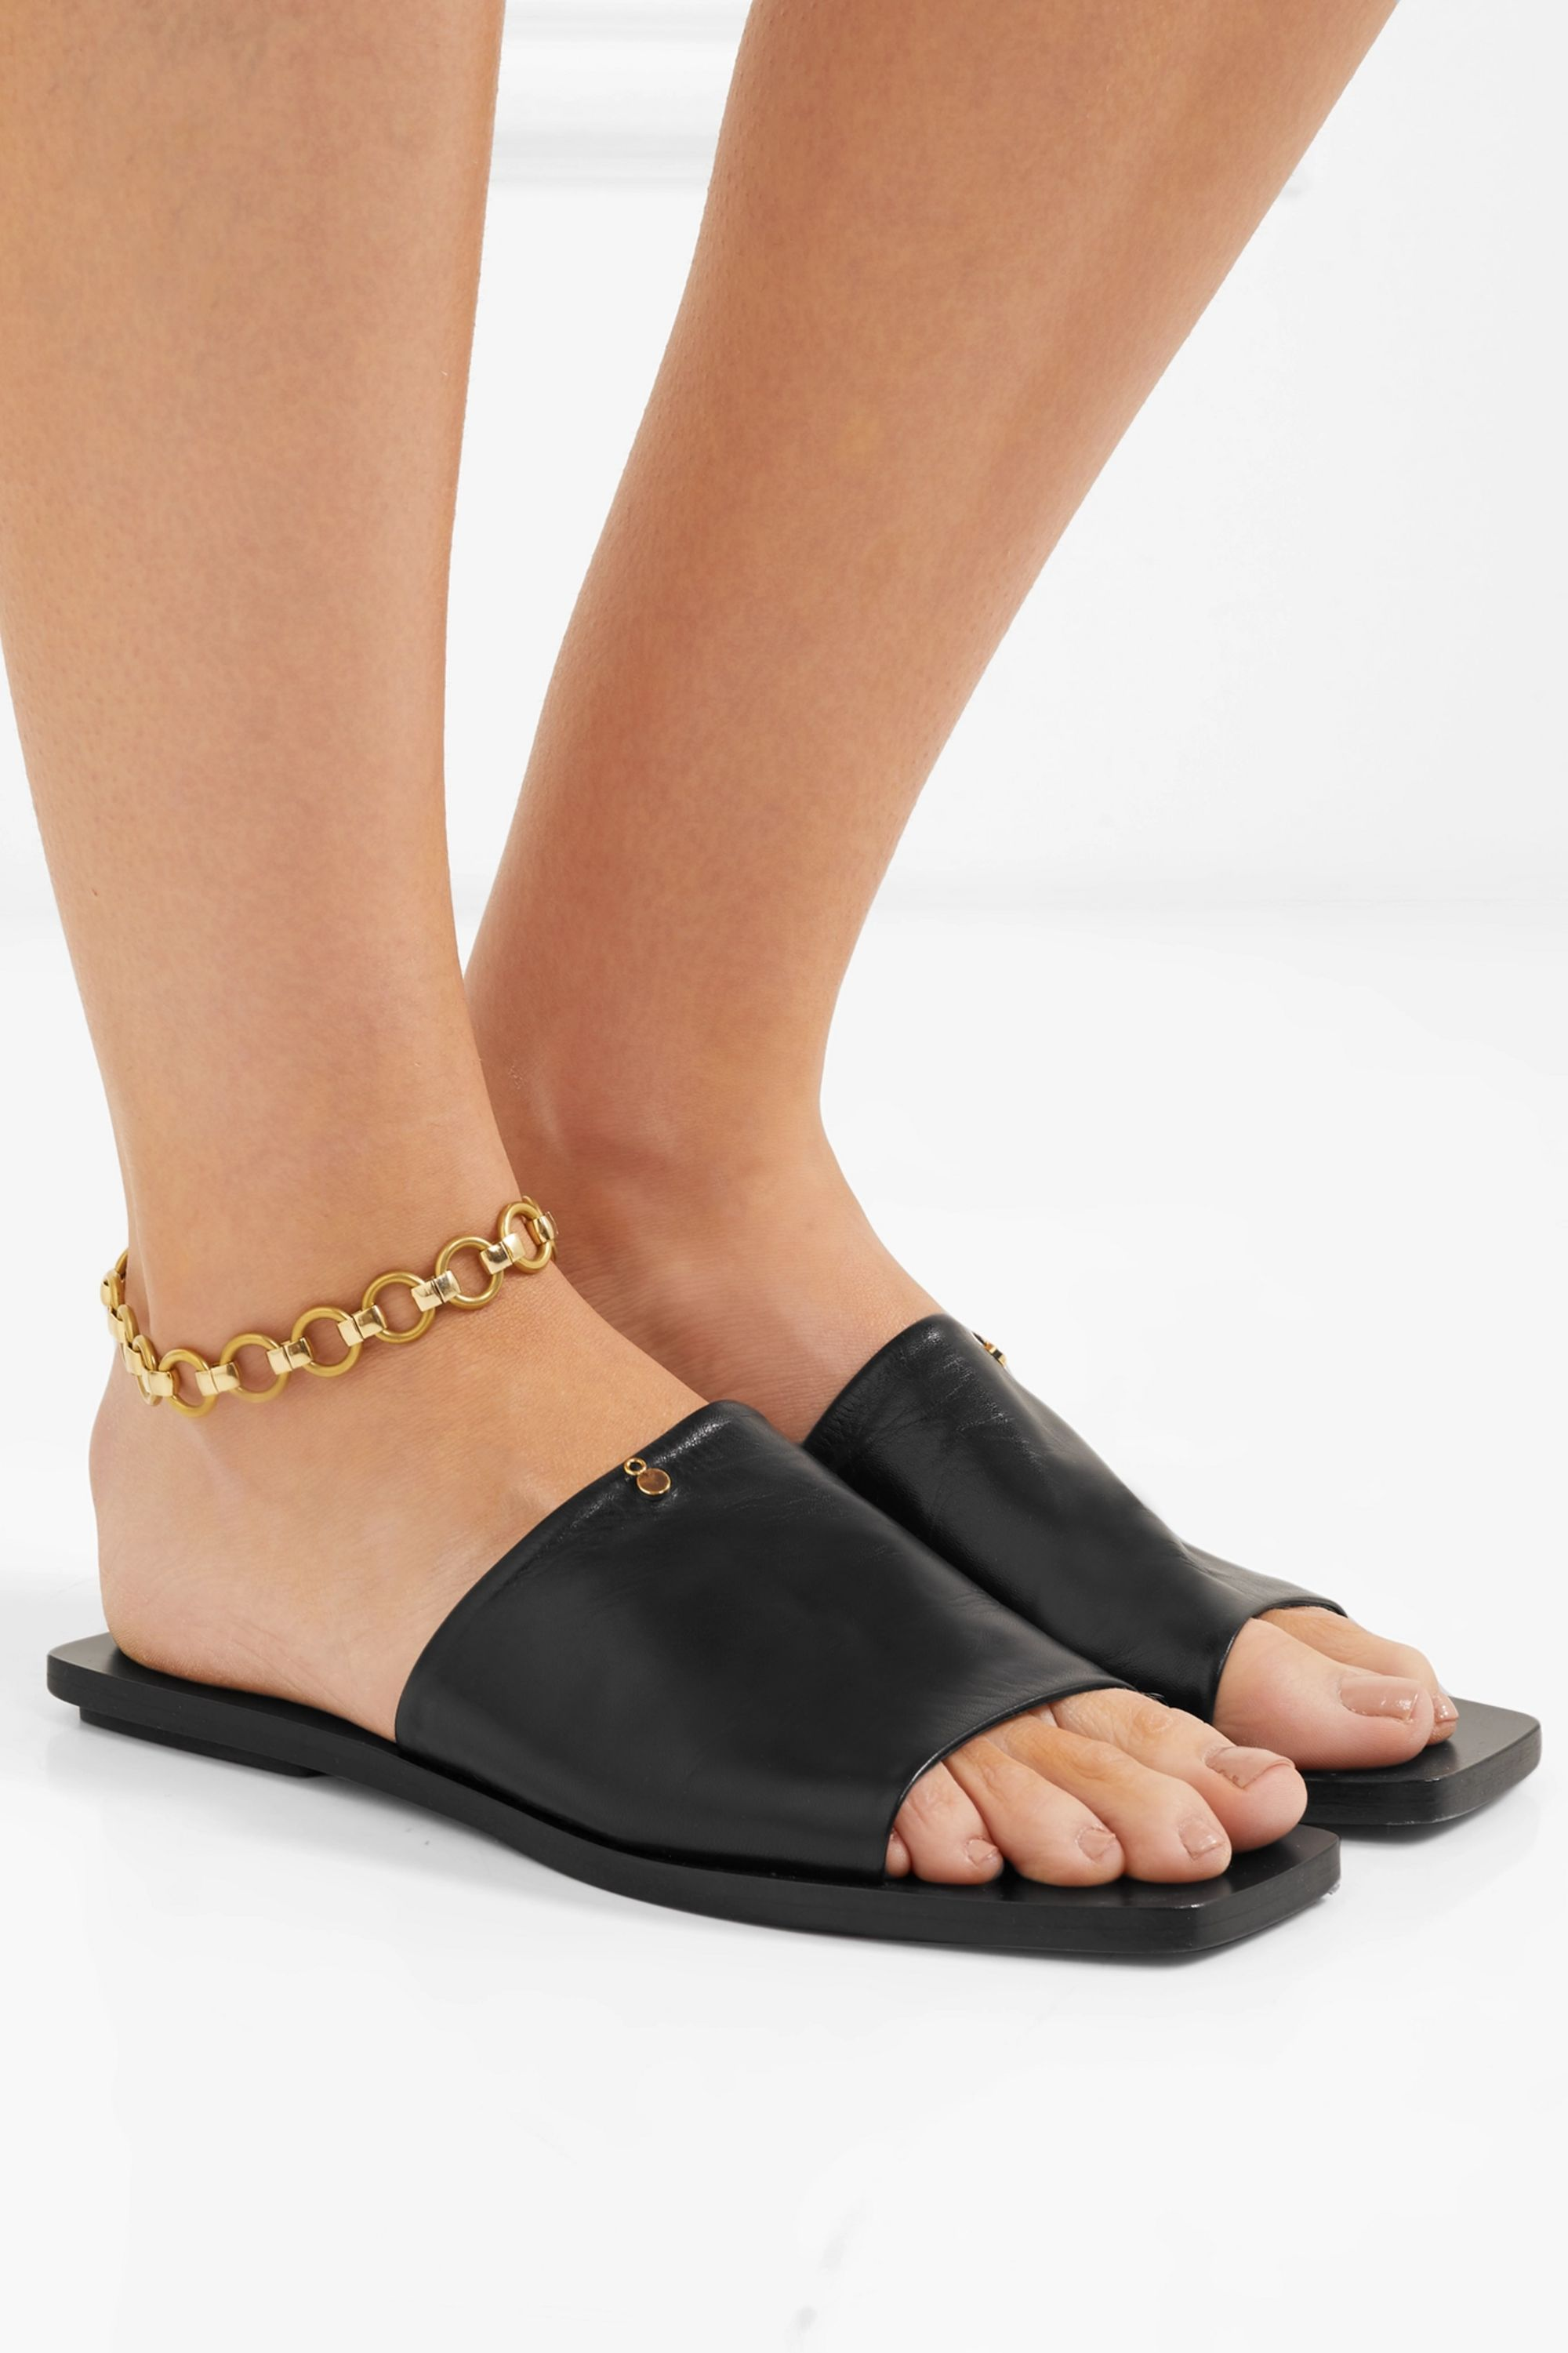 Laura Lombardi Gold-tone anklet